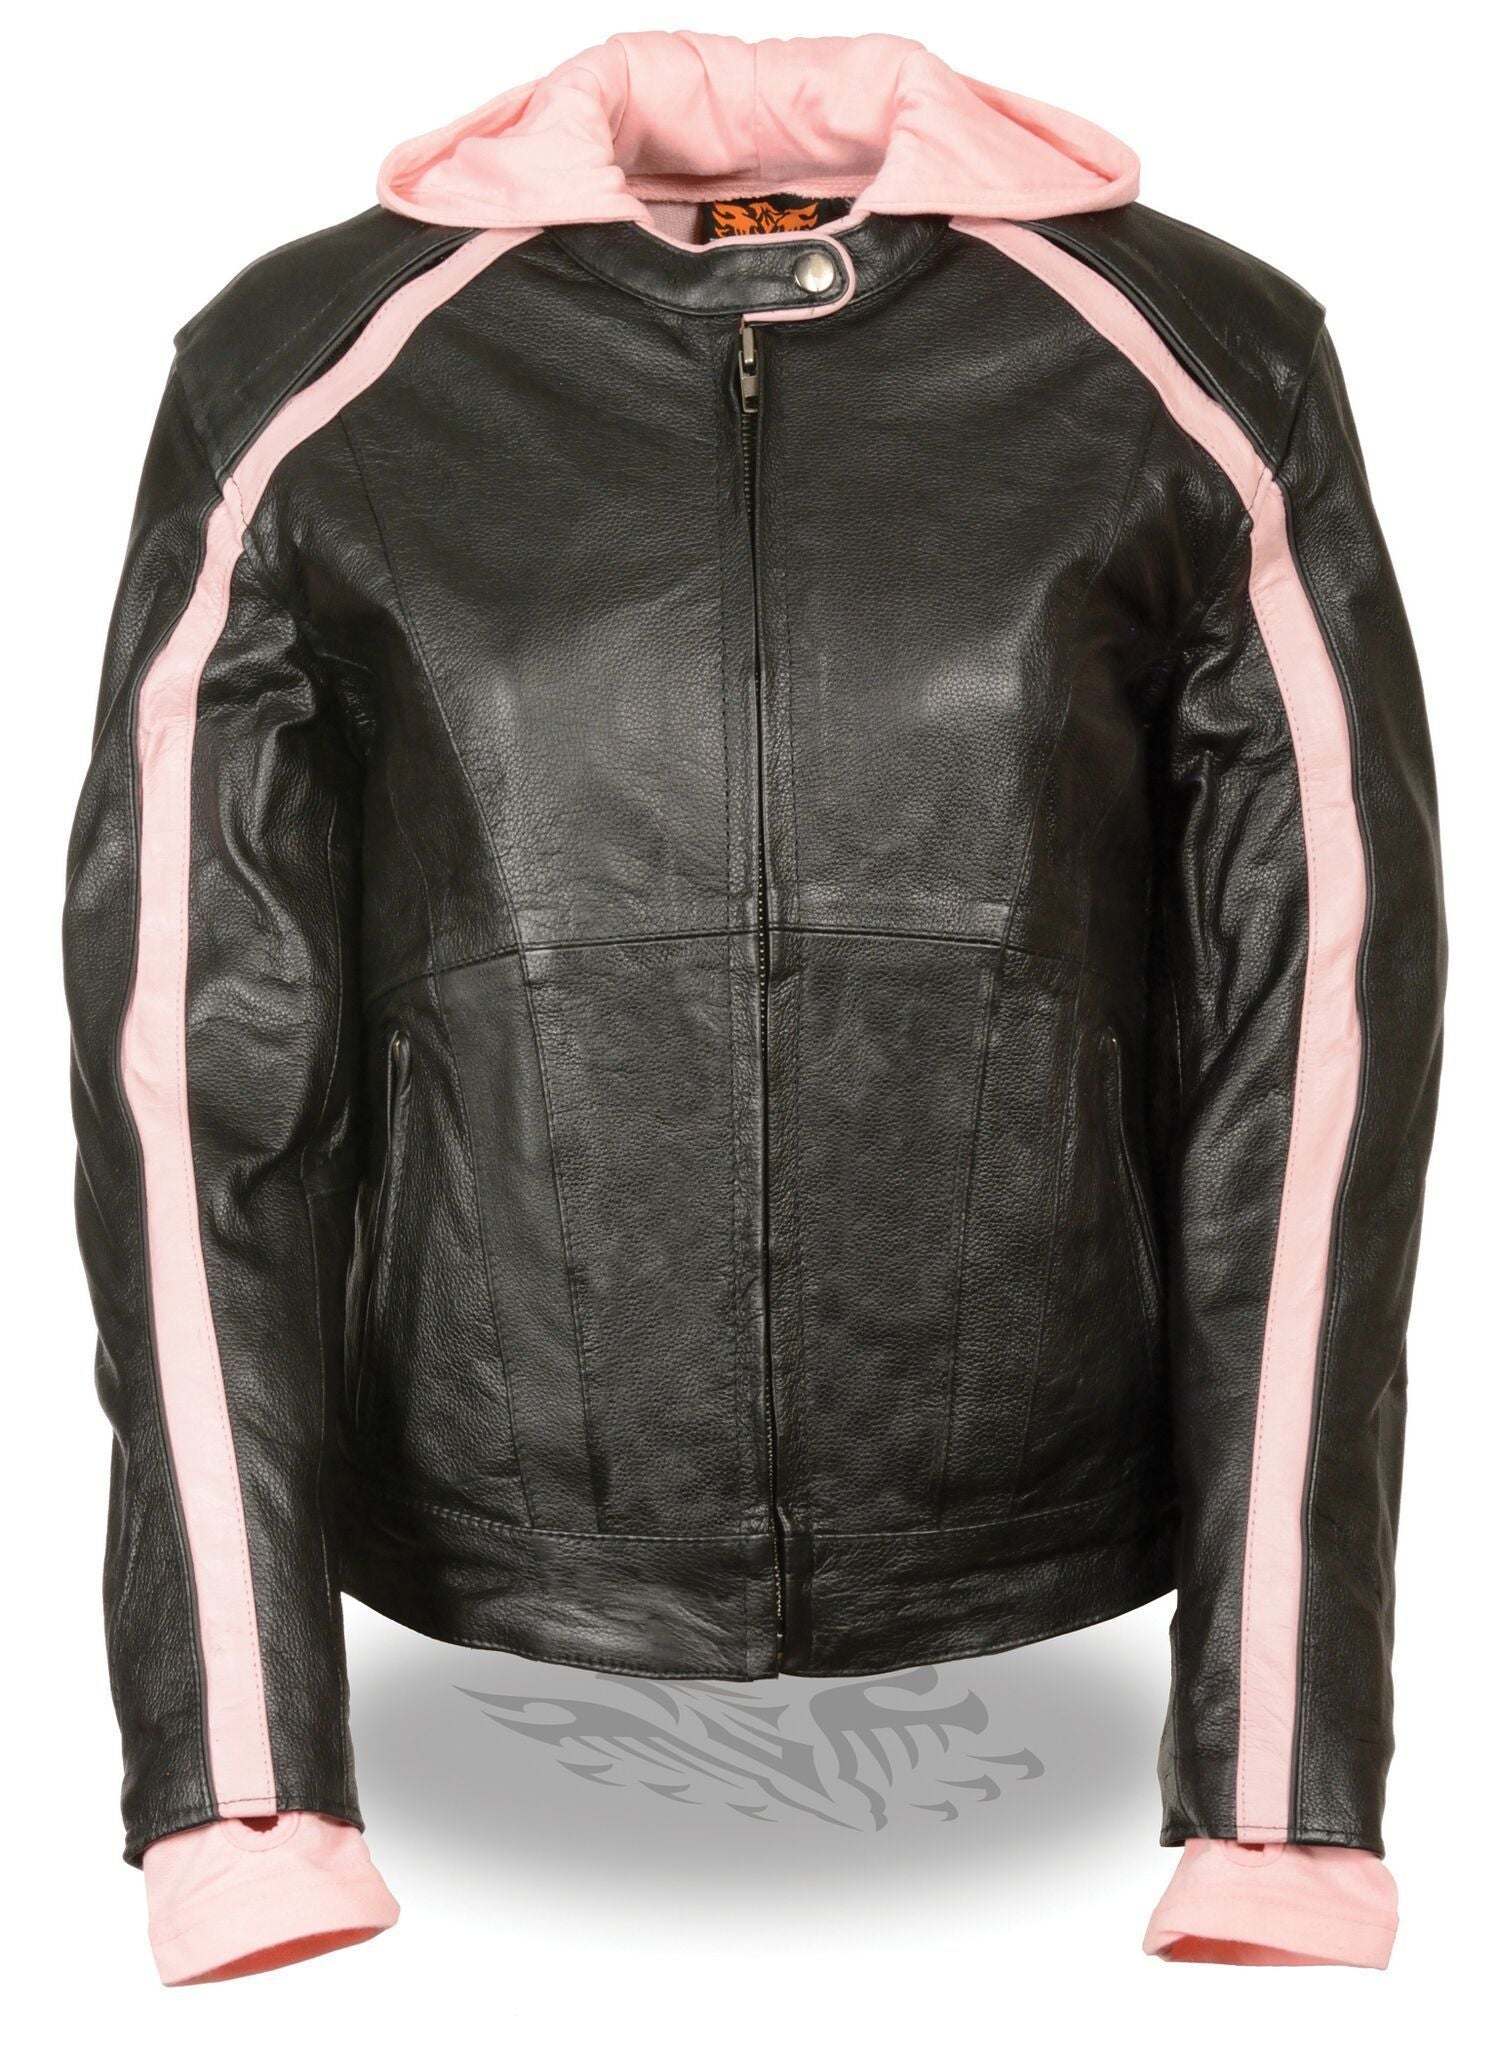 Milwaukee Leather SH1951 Women's Striped Black/Pink Leather Jacket